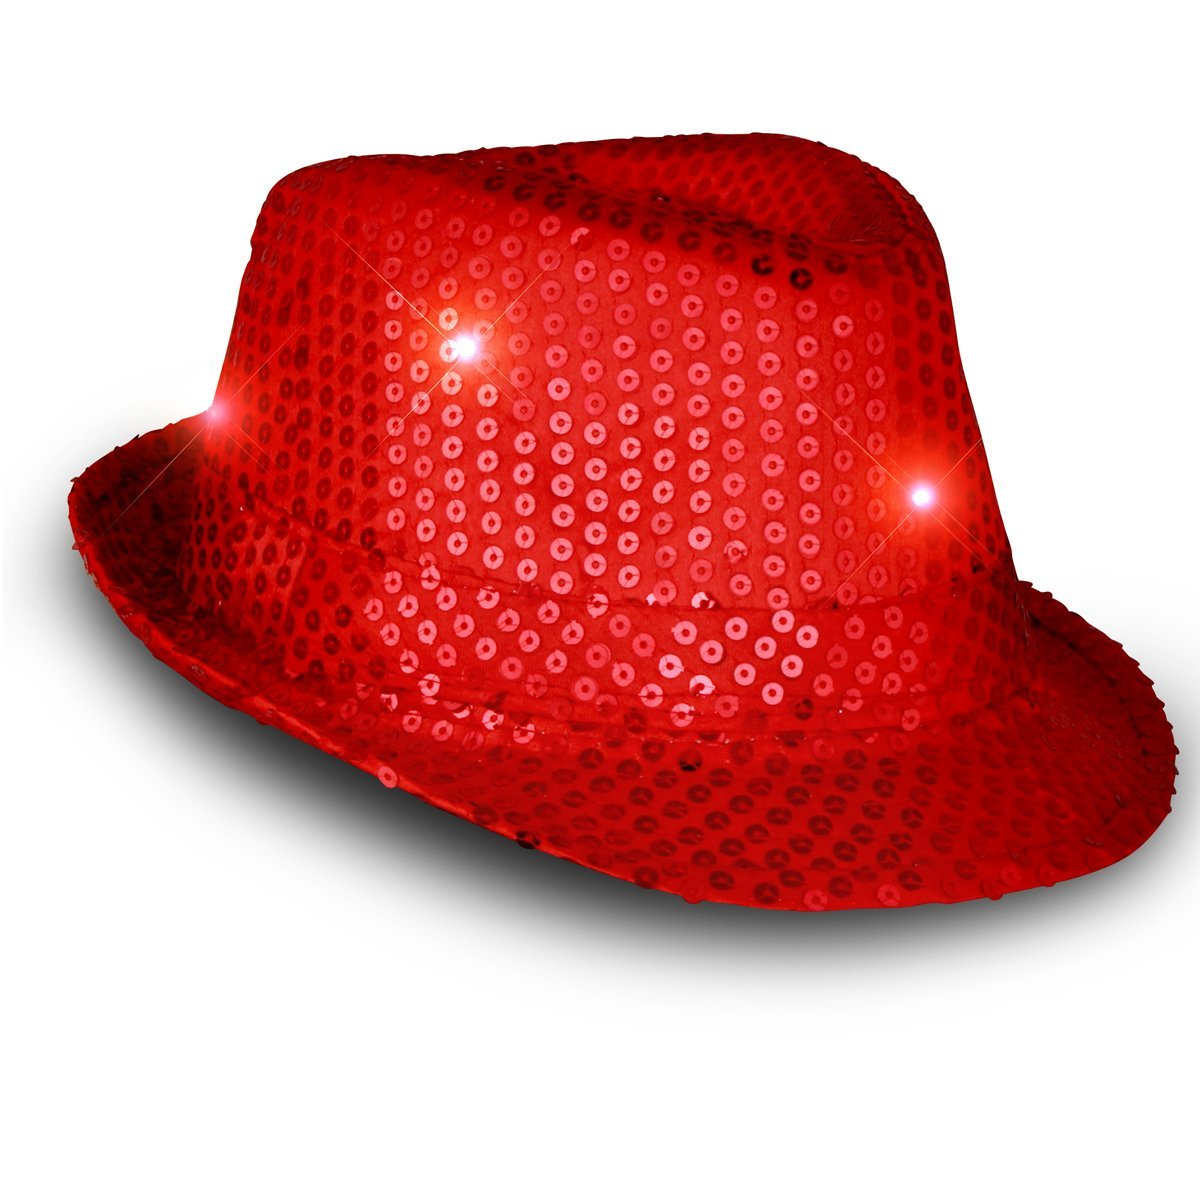 Light Up Led Flashing Fedora Hat With Red Sequins Magic Matt S Brilliant Blinkys